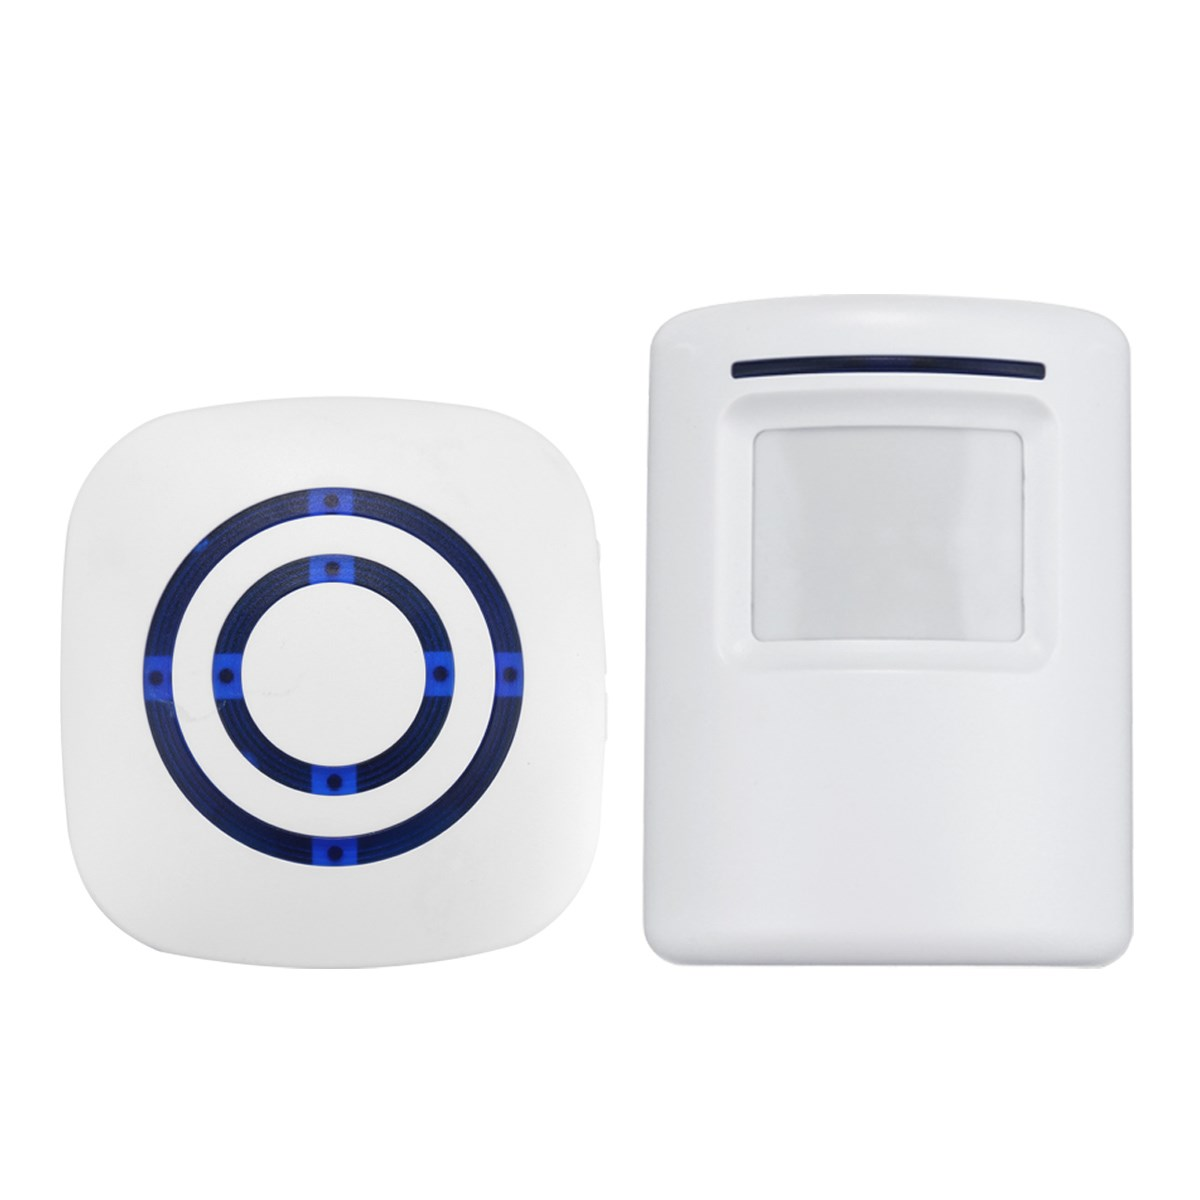 Safurance Wireless Motion Sensor Detector Gate Entry Door Bell Welcome Chime Alert Alarm  Home Automation Home Security